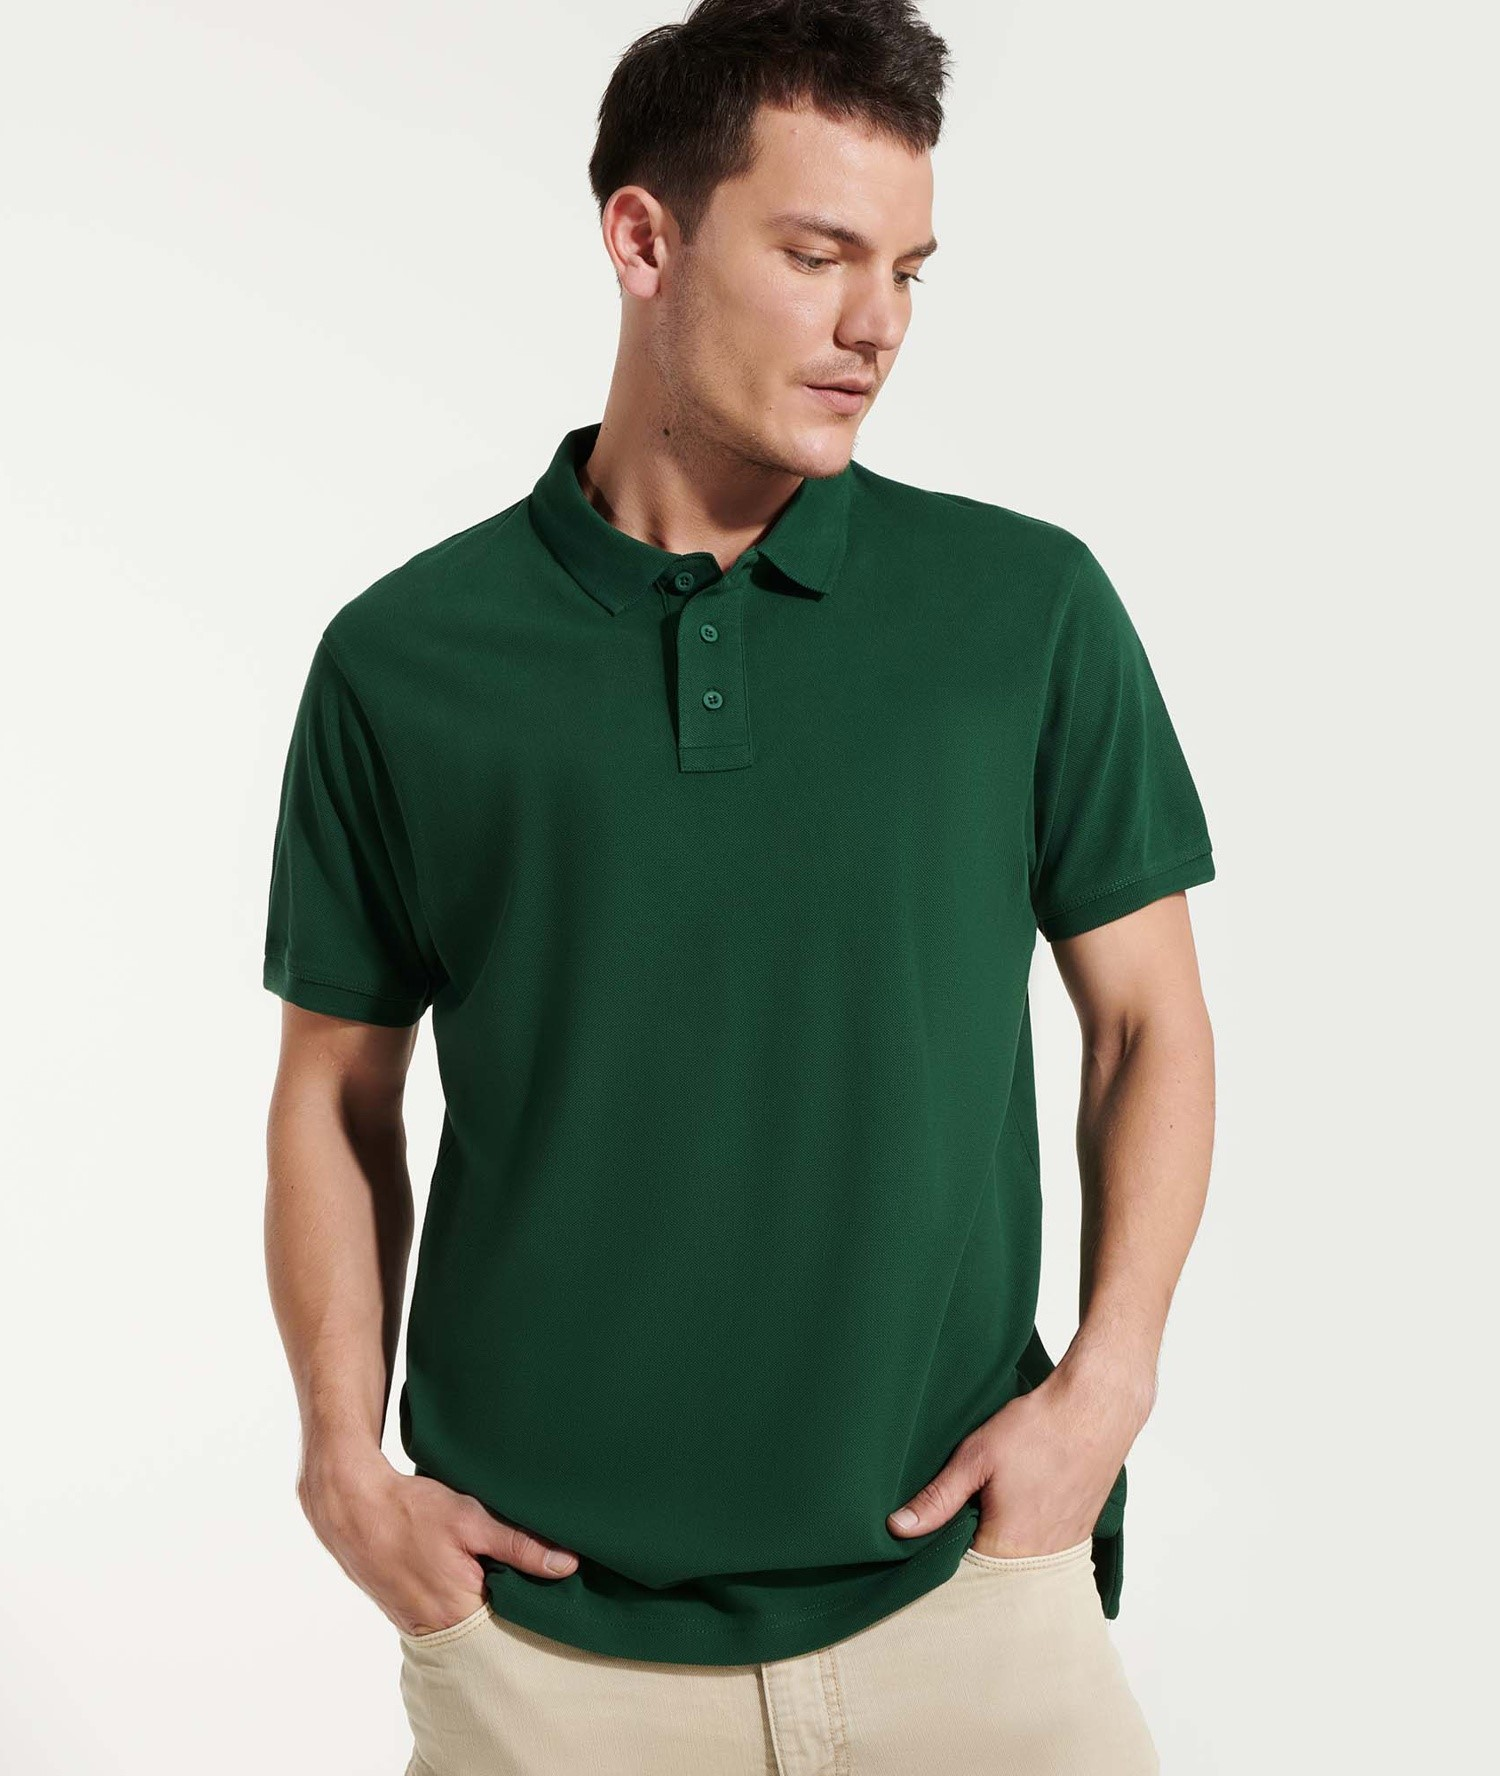 POLO SHIRT ROLY IMPERIUM